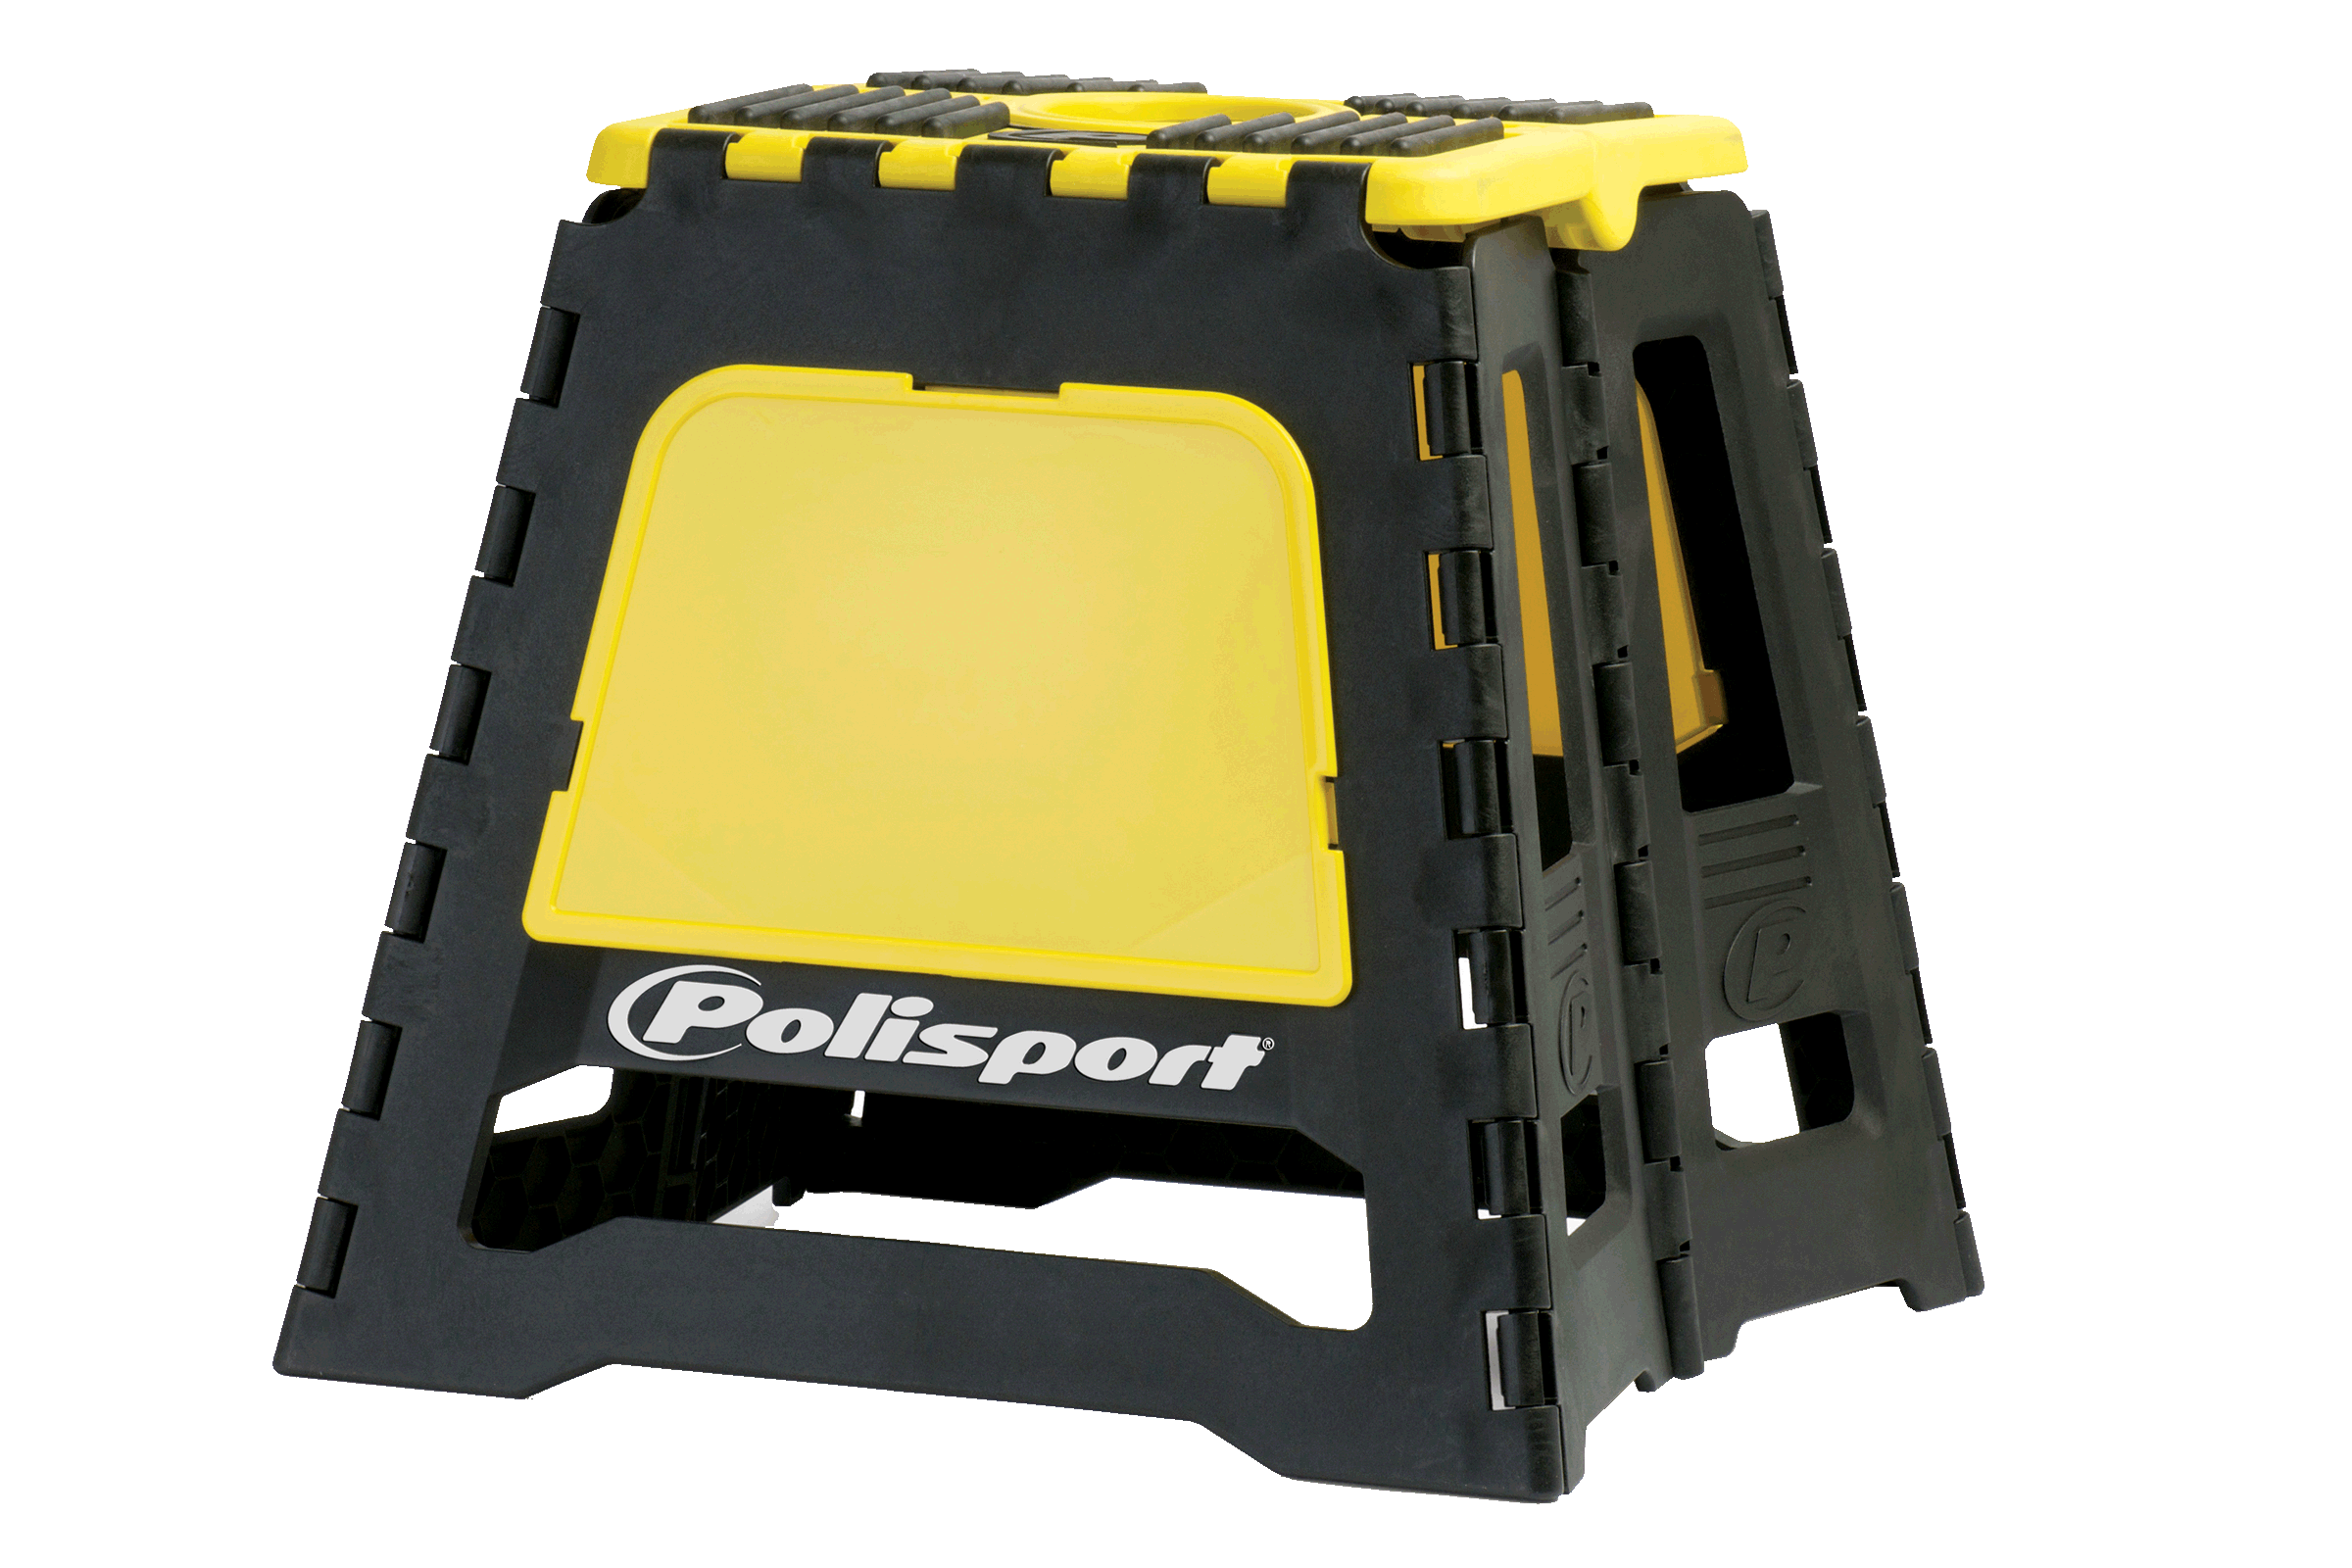 Polisport Foldable Bike Stand Yellow